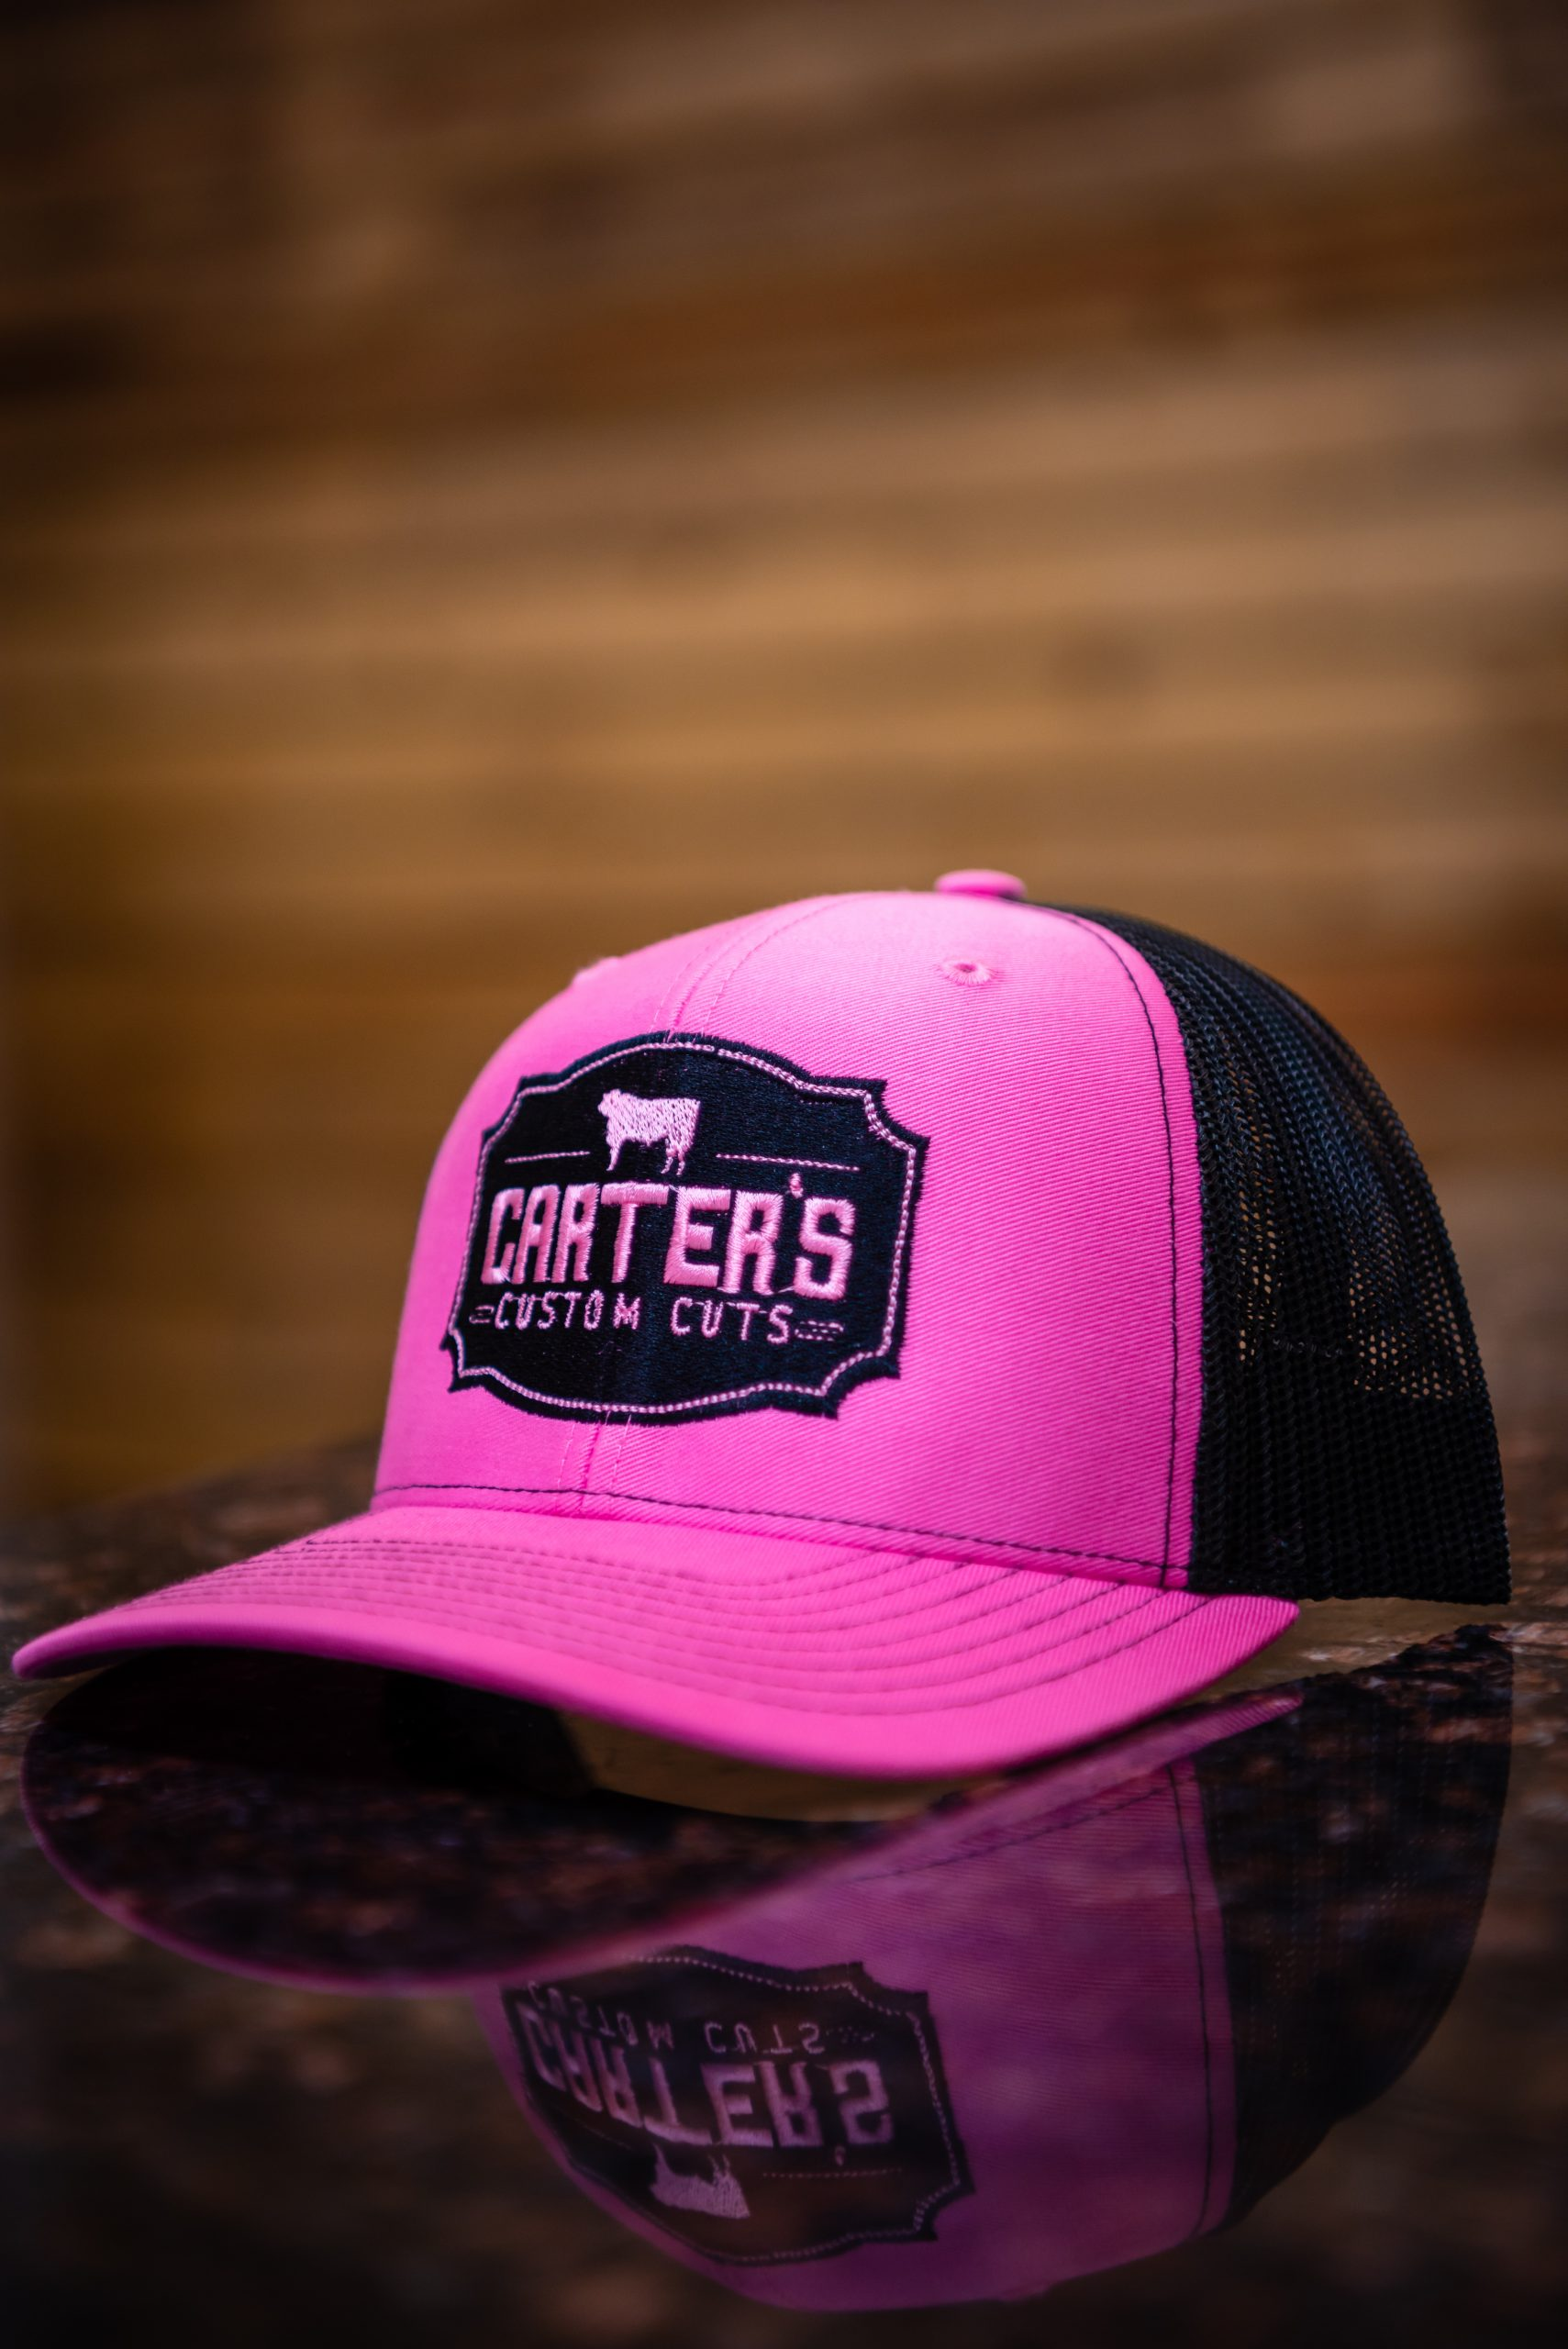 carters-custom-cuts-9_43447405535_o